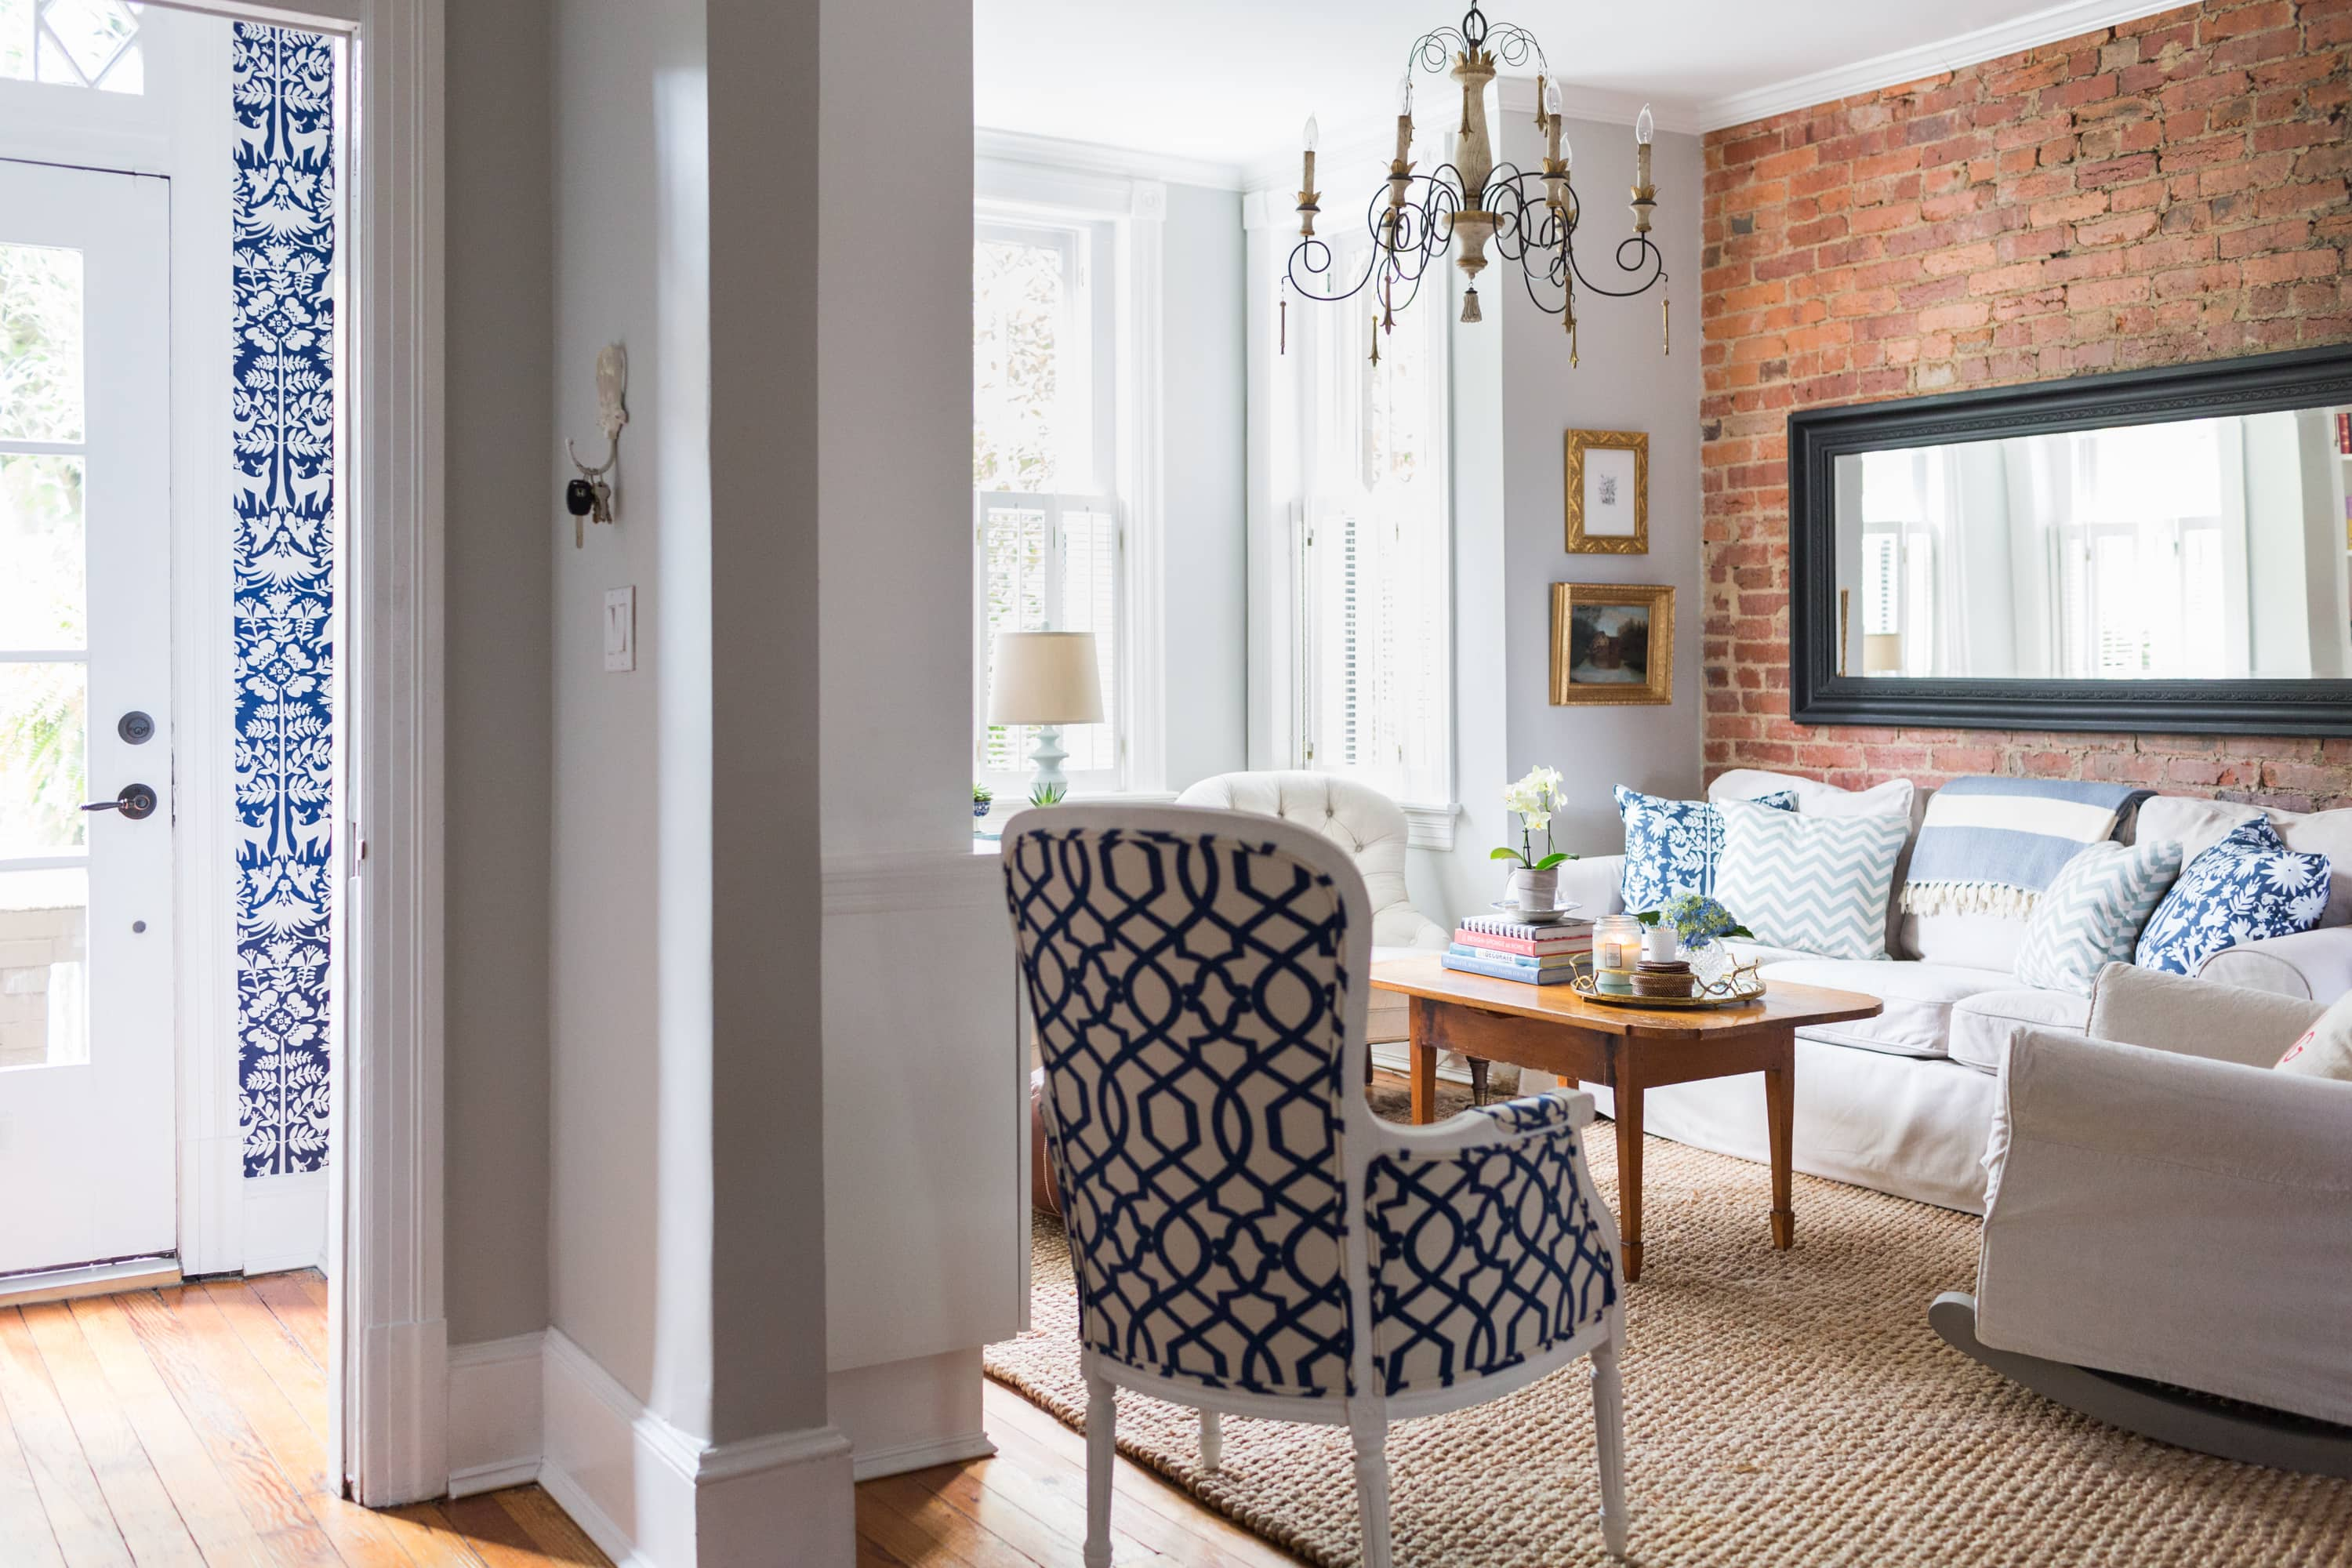 Cozy, Southern Charm In A Hundred Year Old D.C. Family Row House